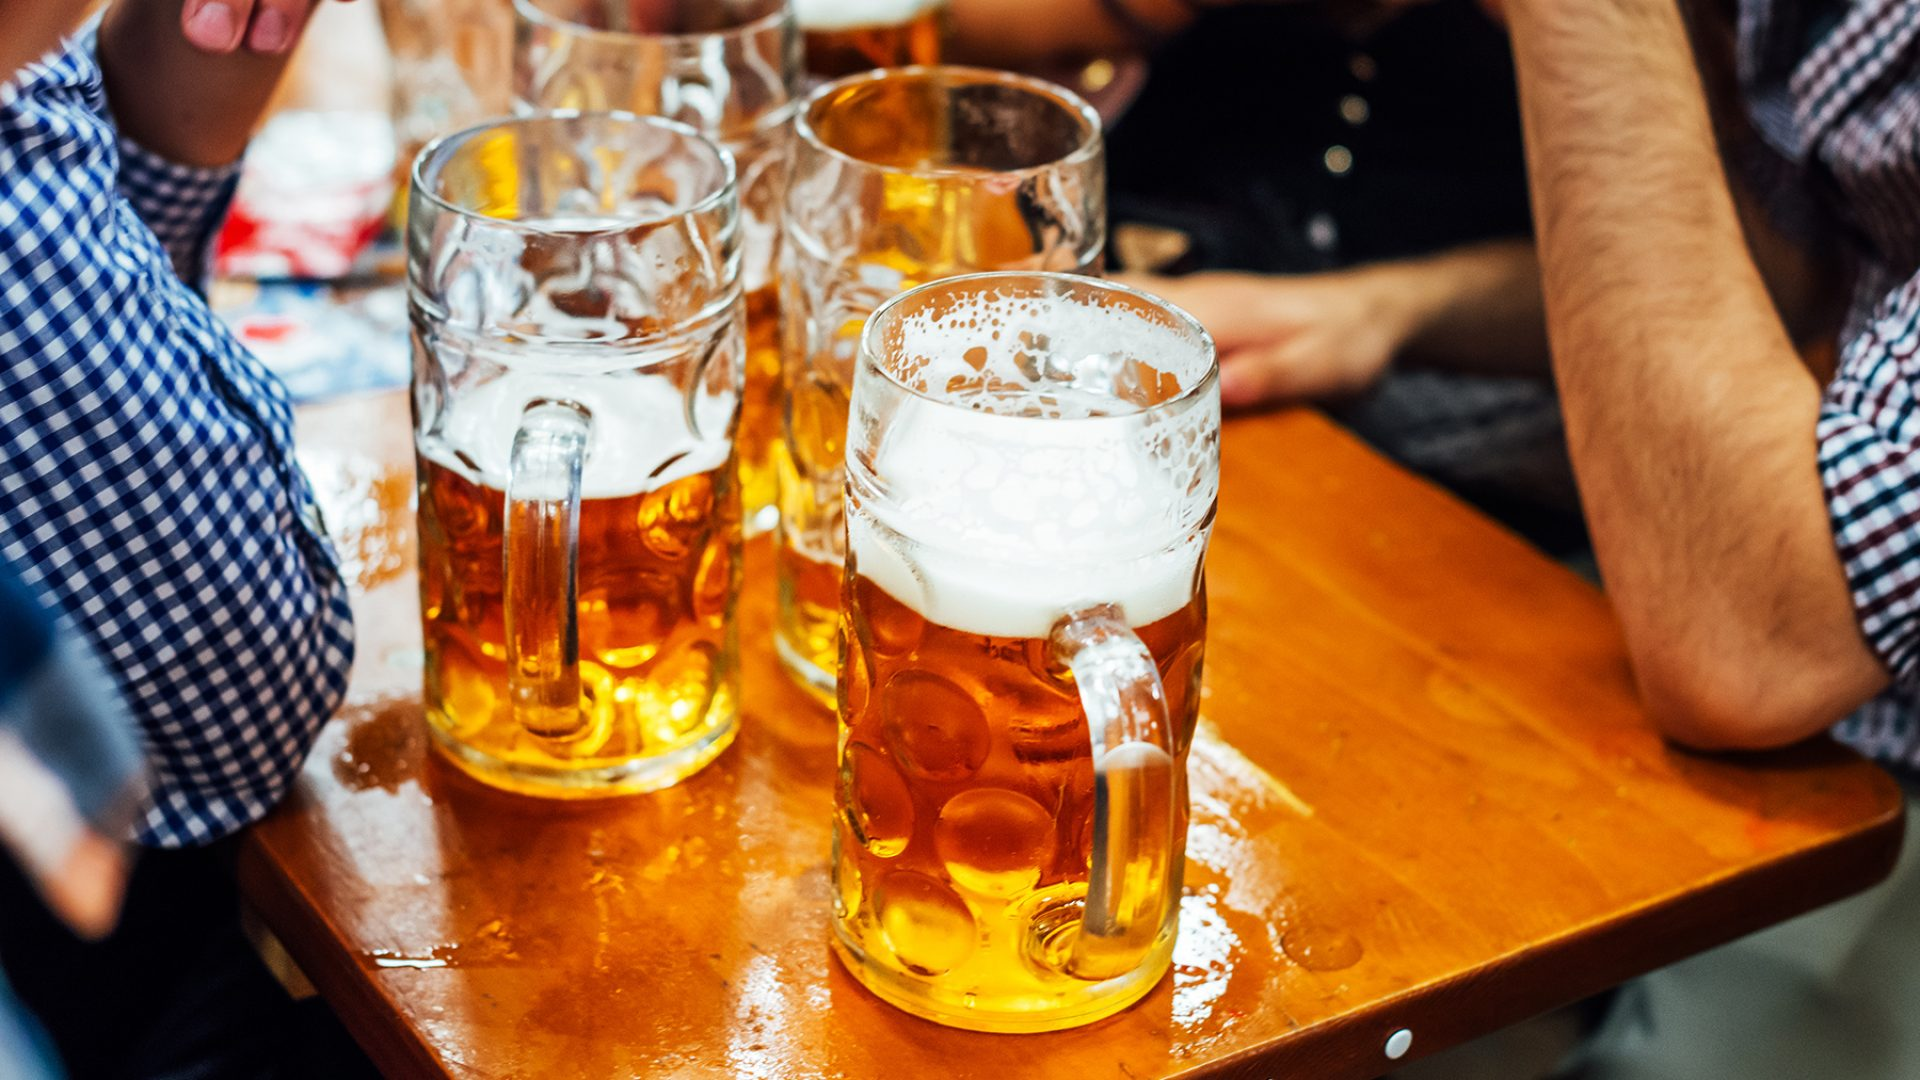 A guide to drinking habits and culture in Germany | Expatica